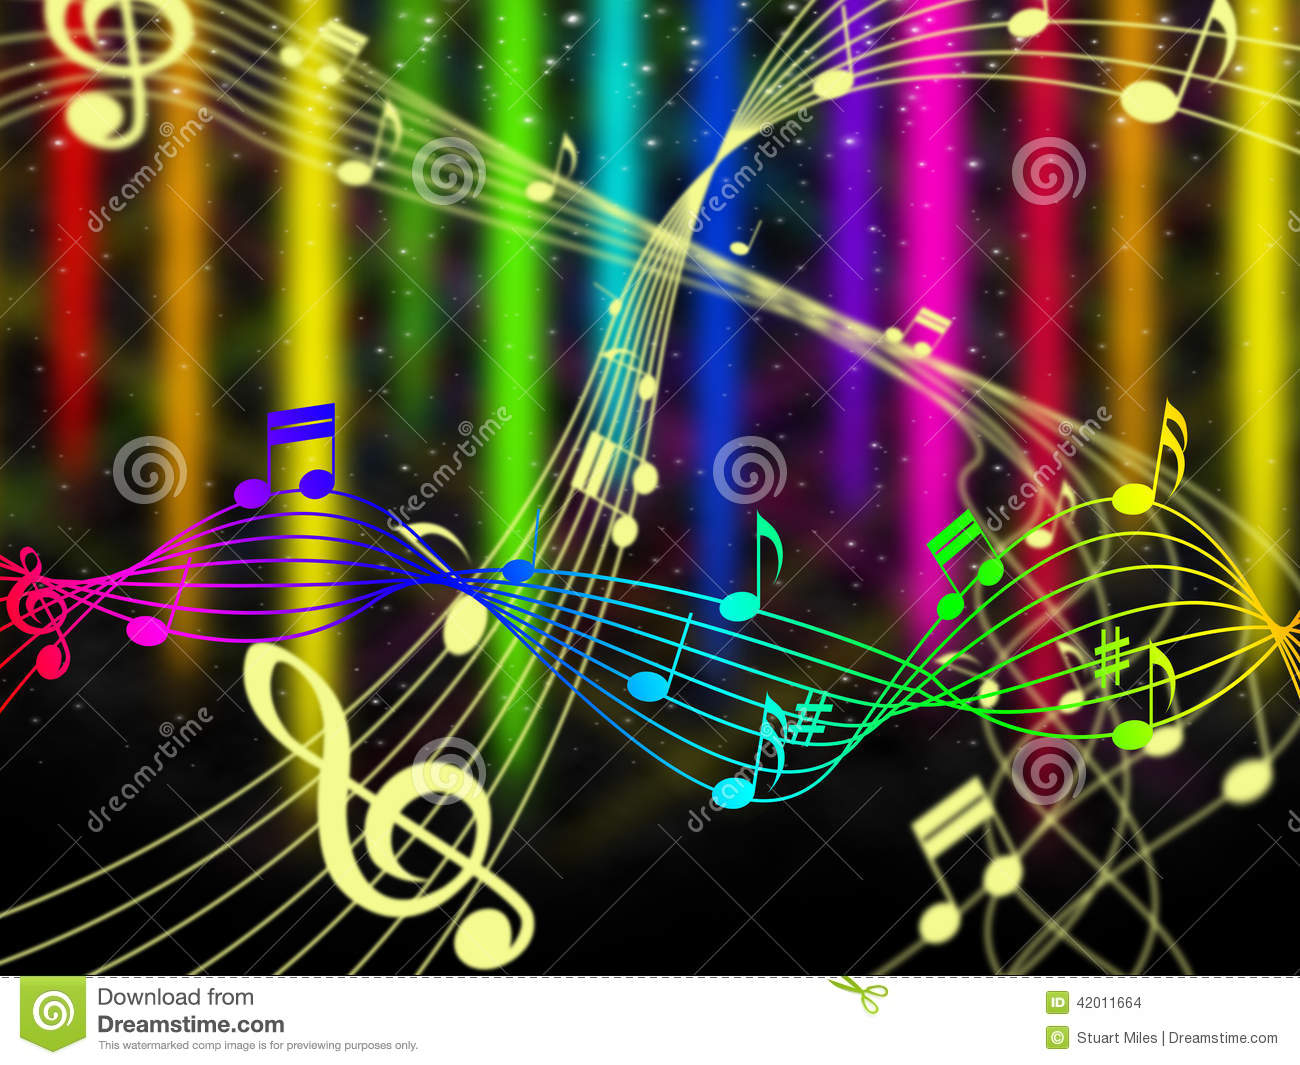 ... Shows Music Note And Acoustic Stock Illustration - Image: 42011664